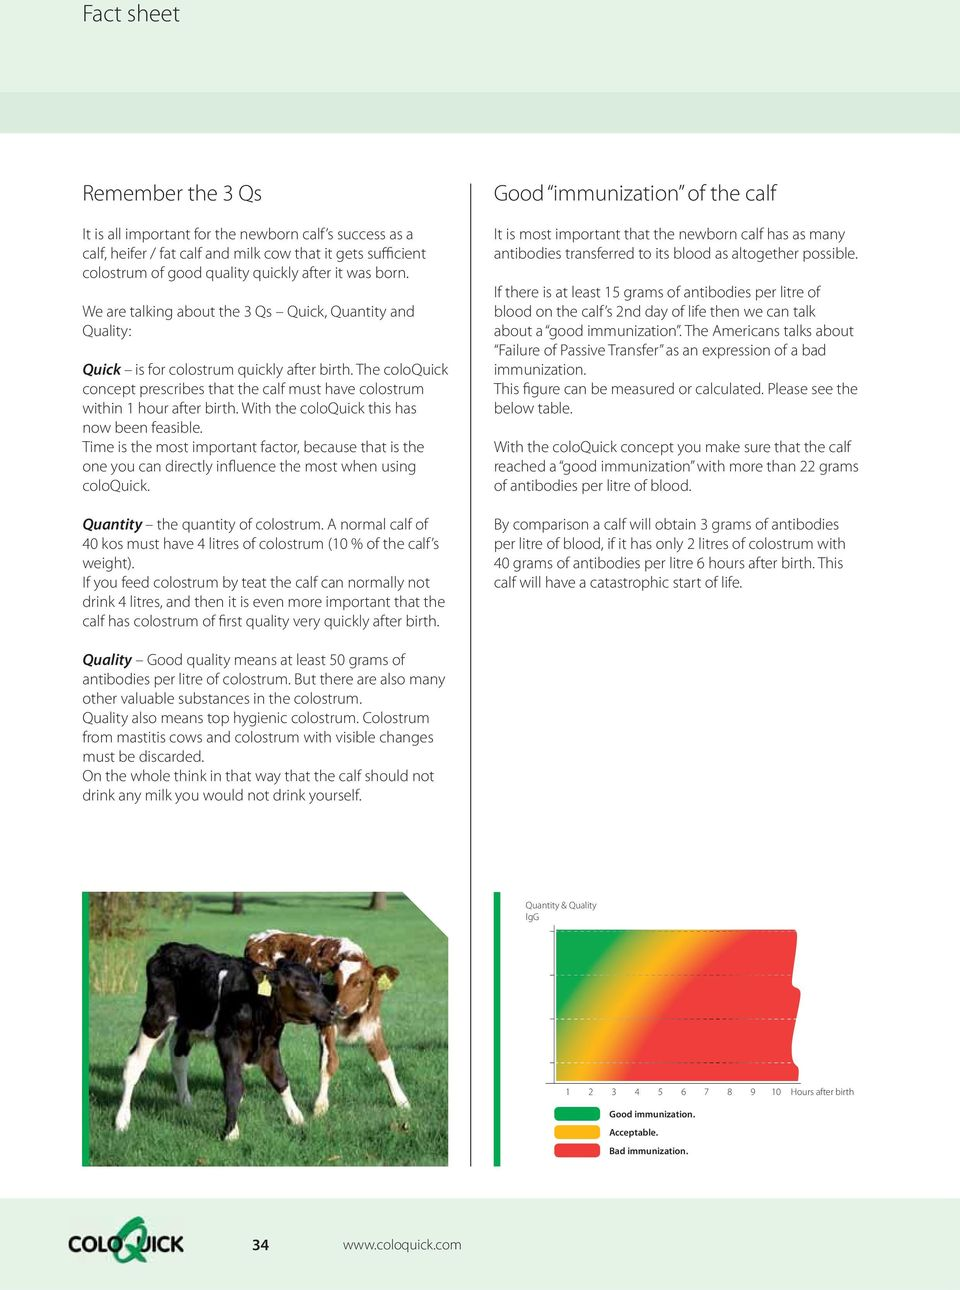 With the coloquick this has now been feasible. Time is the most important factor, because that is the one you can directly influence the most when using coloquick. Quantity the quantity of colostrum.